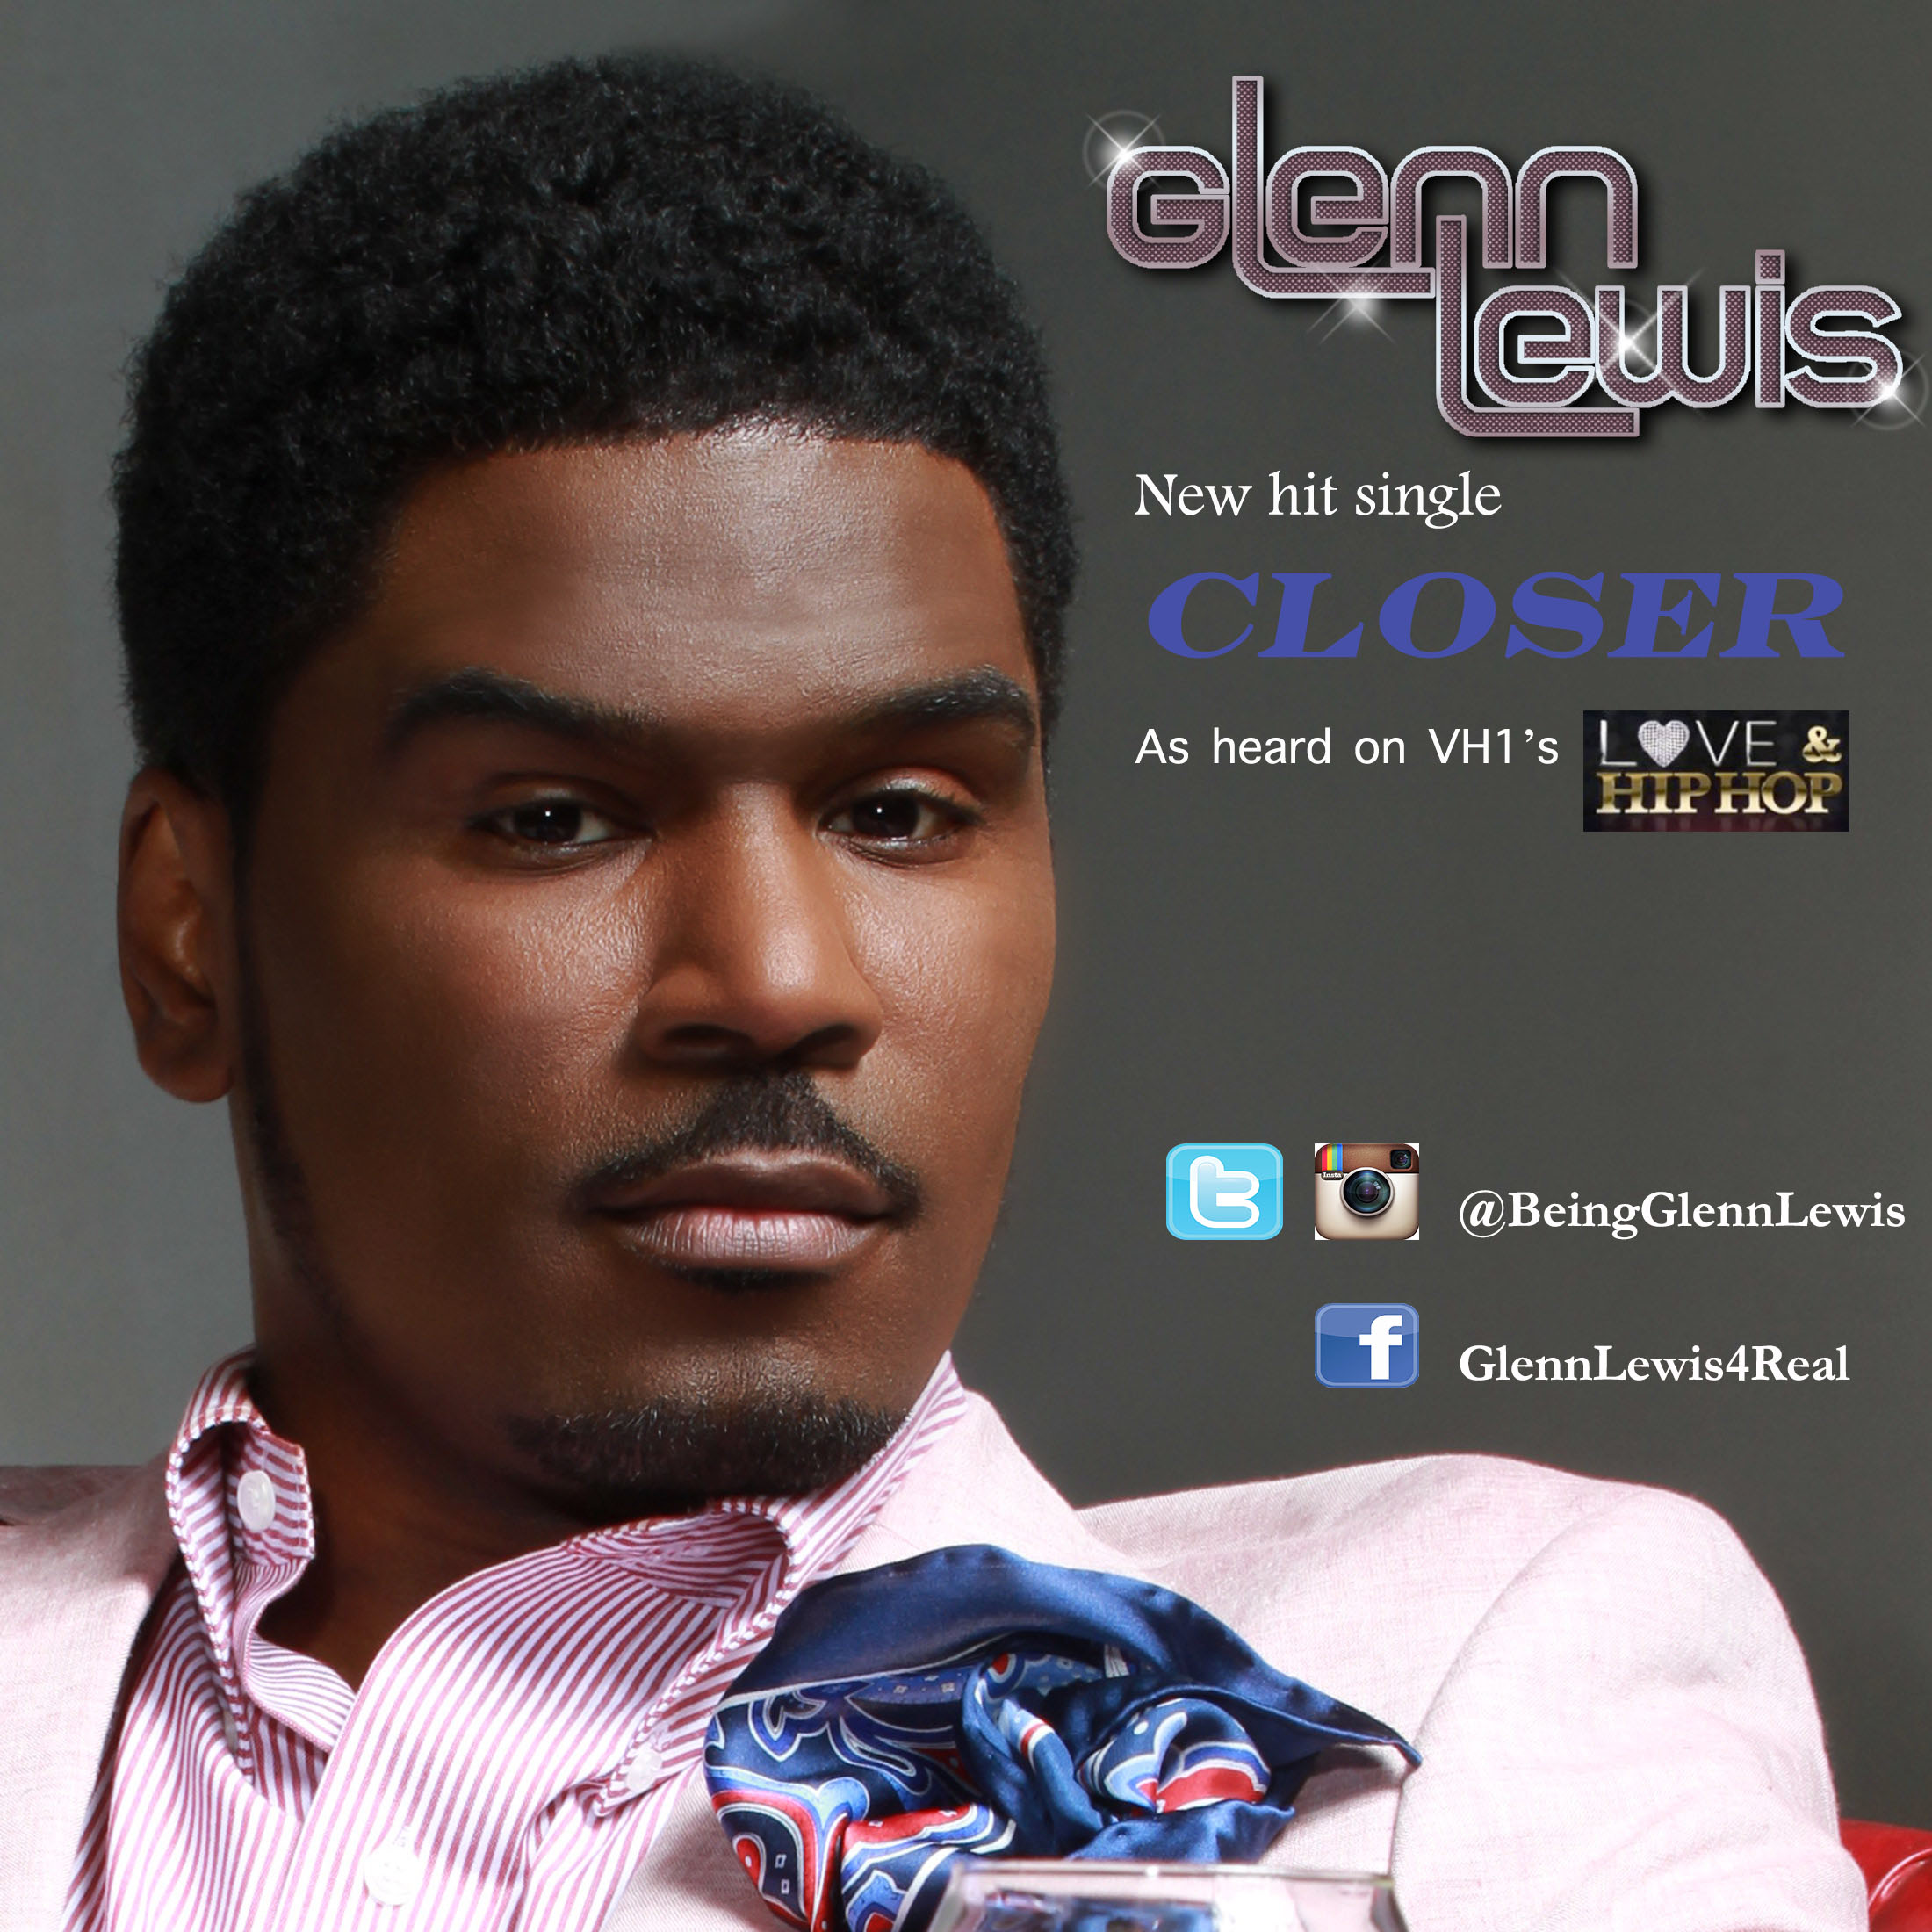 Glenn Lewis Closer